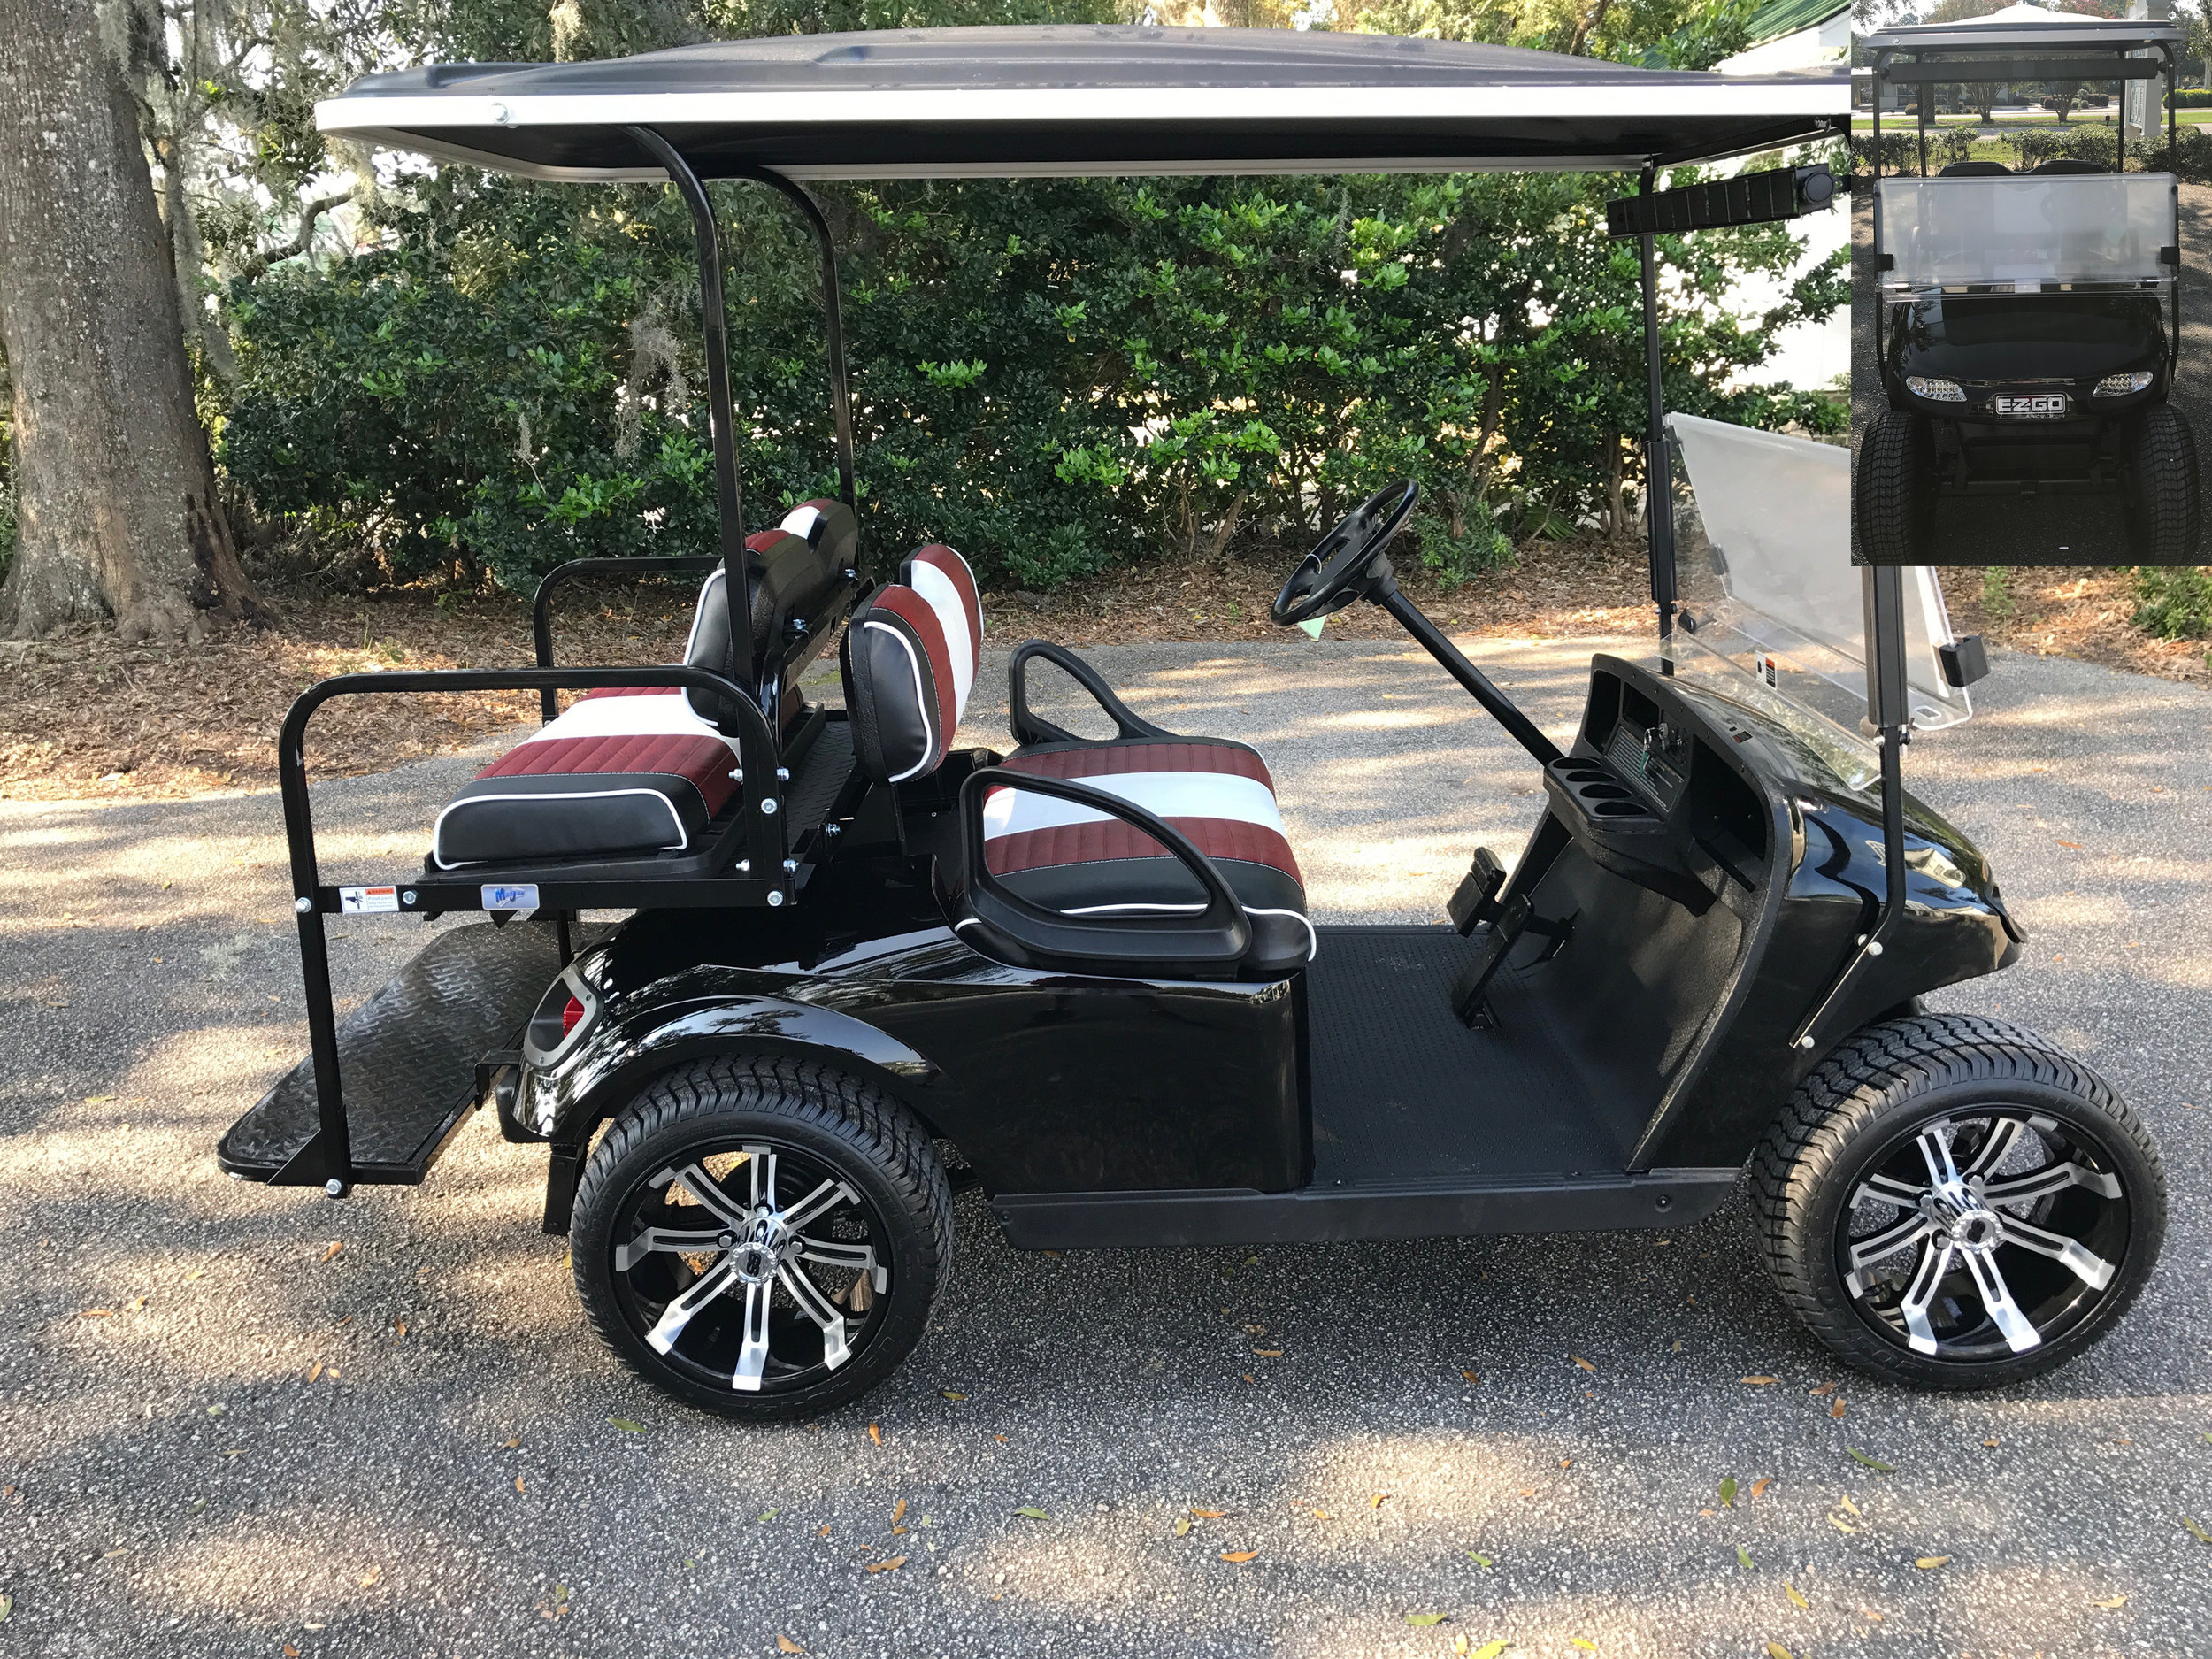 2015 Black EZGO Cart ———————-  Black, burgundy, and gray seats, black extended top, new 2019 batteries (6-8vt), high speed code, LED lights, Low Pro tires, mirror, flip windshield, and state of charge meter